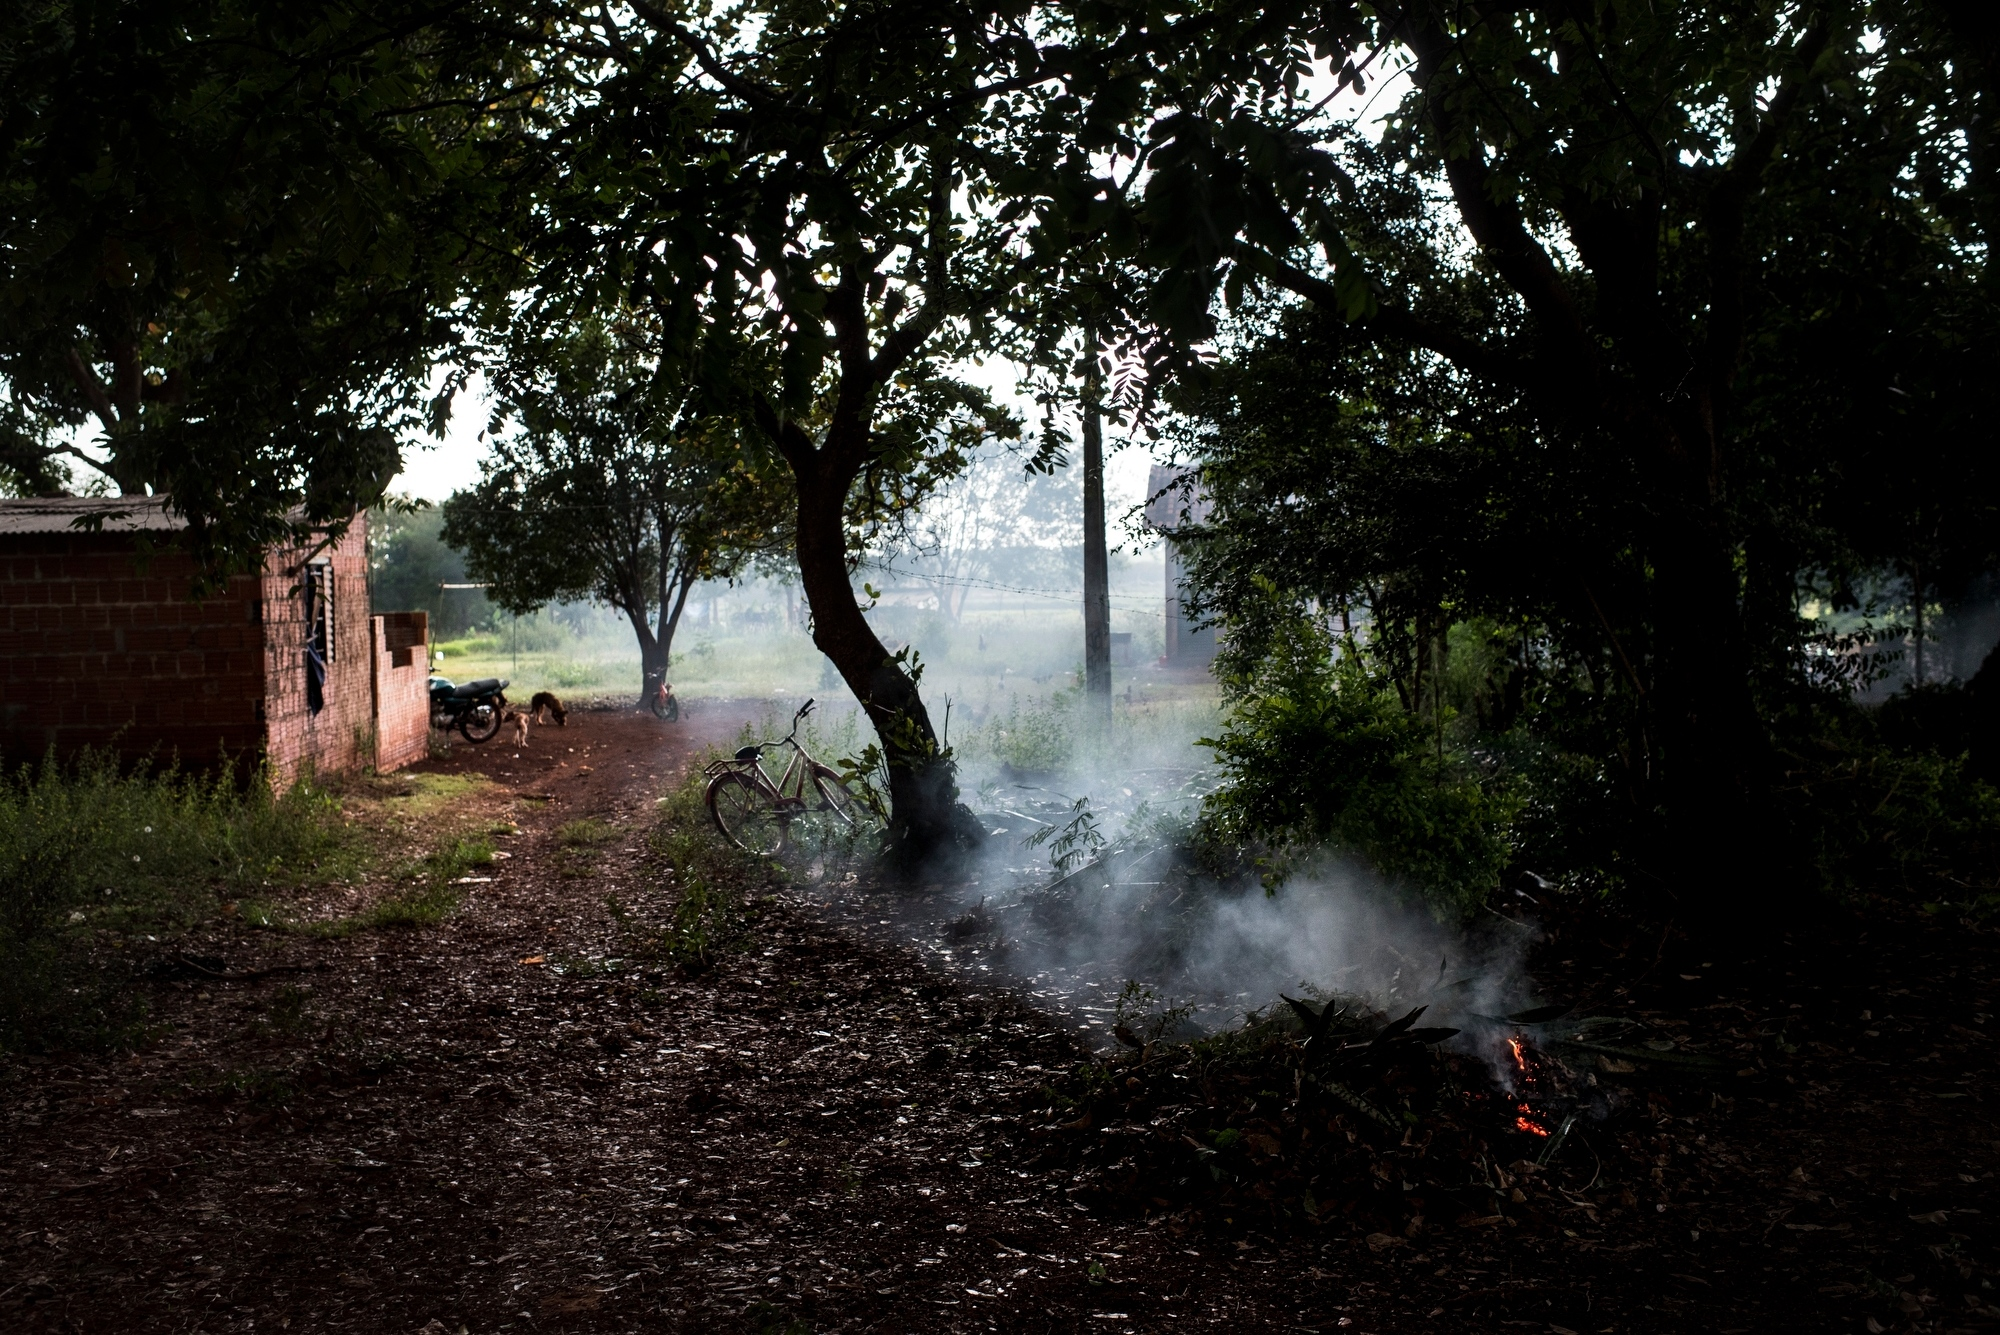 November 28, 2016.  A leaf fire burns in the yard where Onildo de Oliveira was found hanging from in the Dourados Guarani-Kaiówa Reservation in Matto Grosso Du Sul, Brazil. Oliveira committed suicide the previous week, he had spoken about his inability to get work and support his four children, although he had never mentioned thoughts of suicide. He was 39 years old.